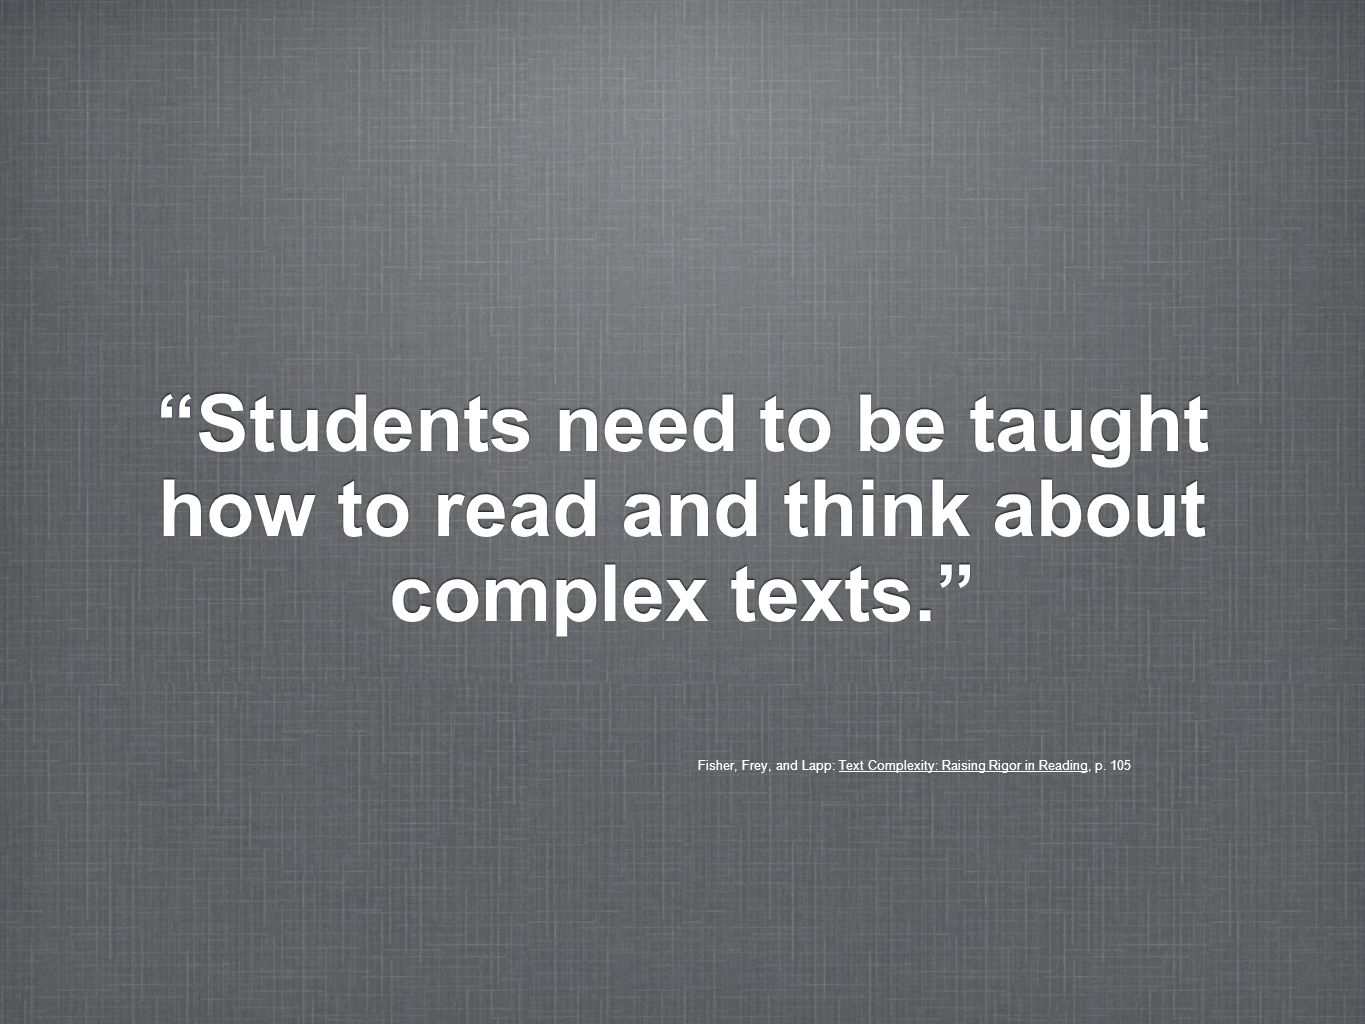 Students need to be taught how to read and think about complex texts. Fisher, Frey, and Lapp: Text Complexity: Raising Rigor in Reading, p. 105